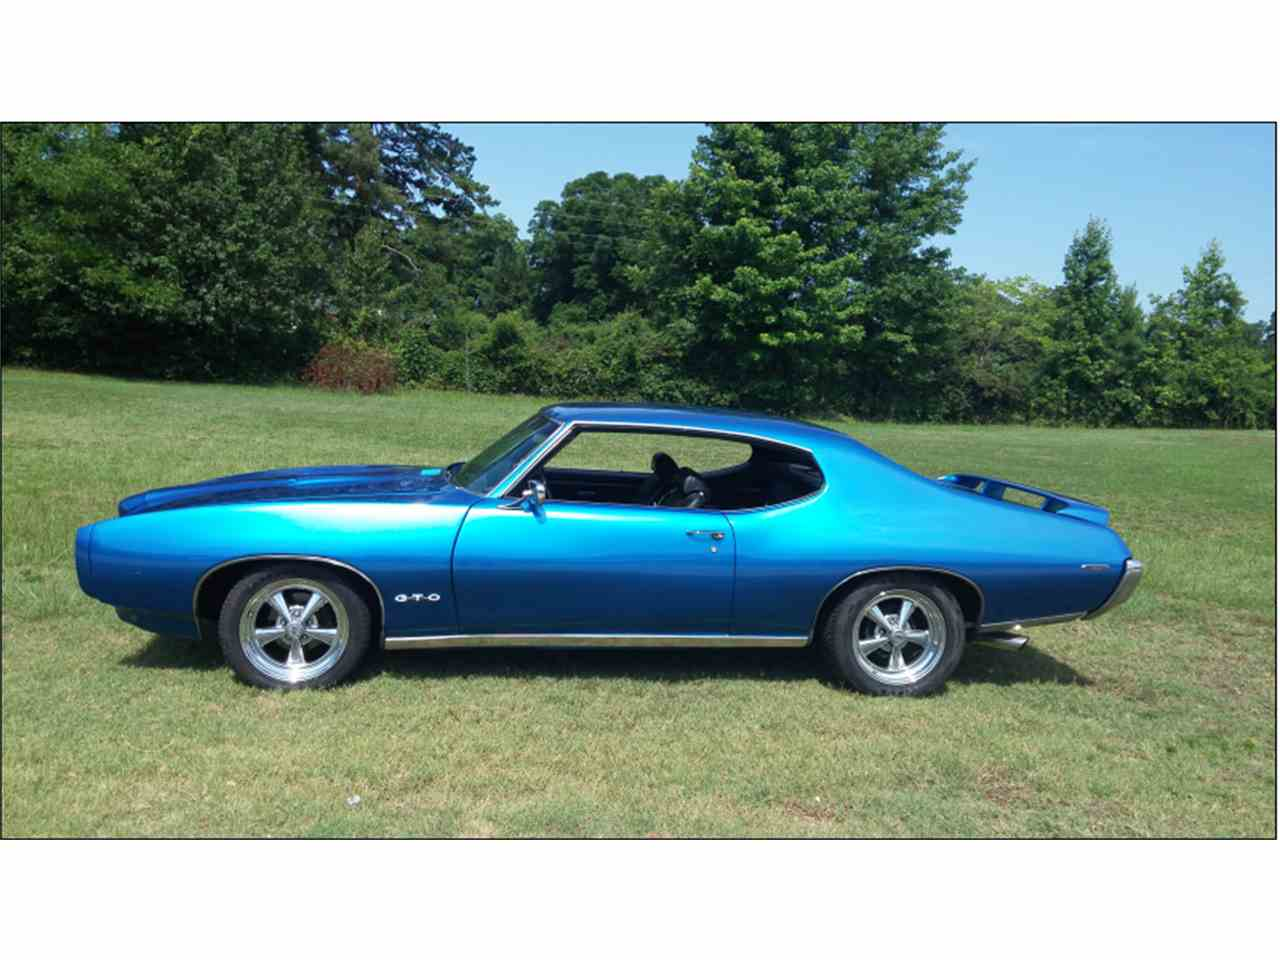 Classic Muscle Cars For Sale In Texas